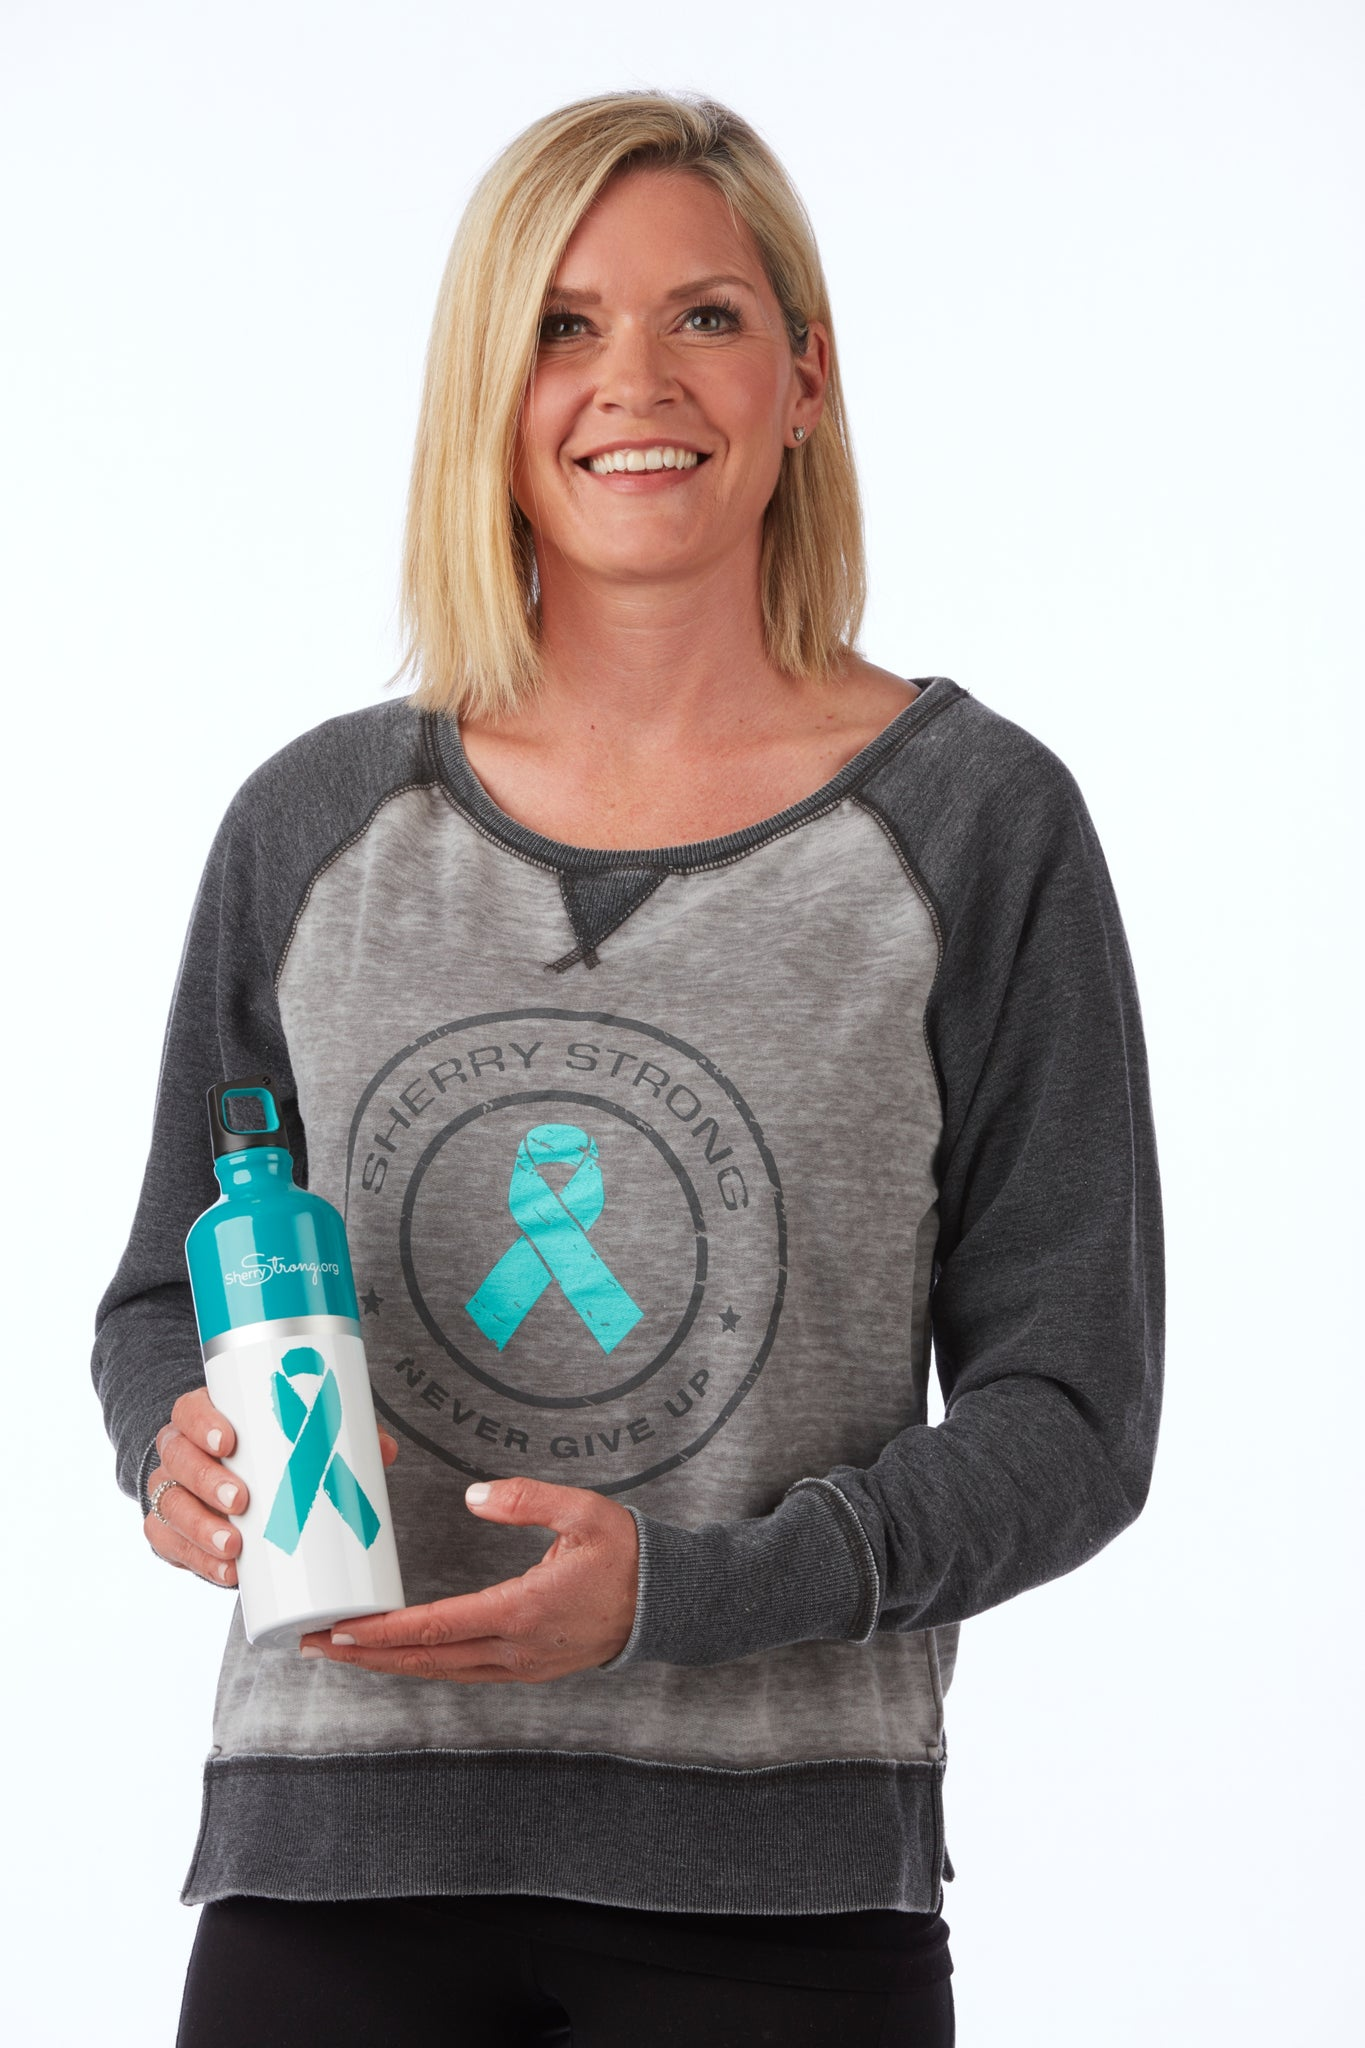 SherryStrong Water Bottle